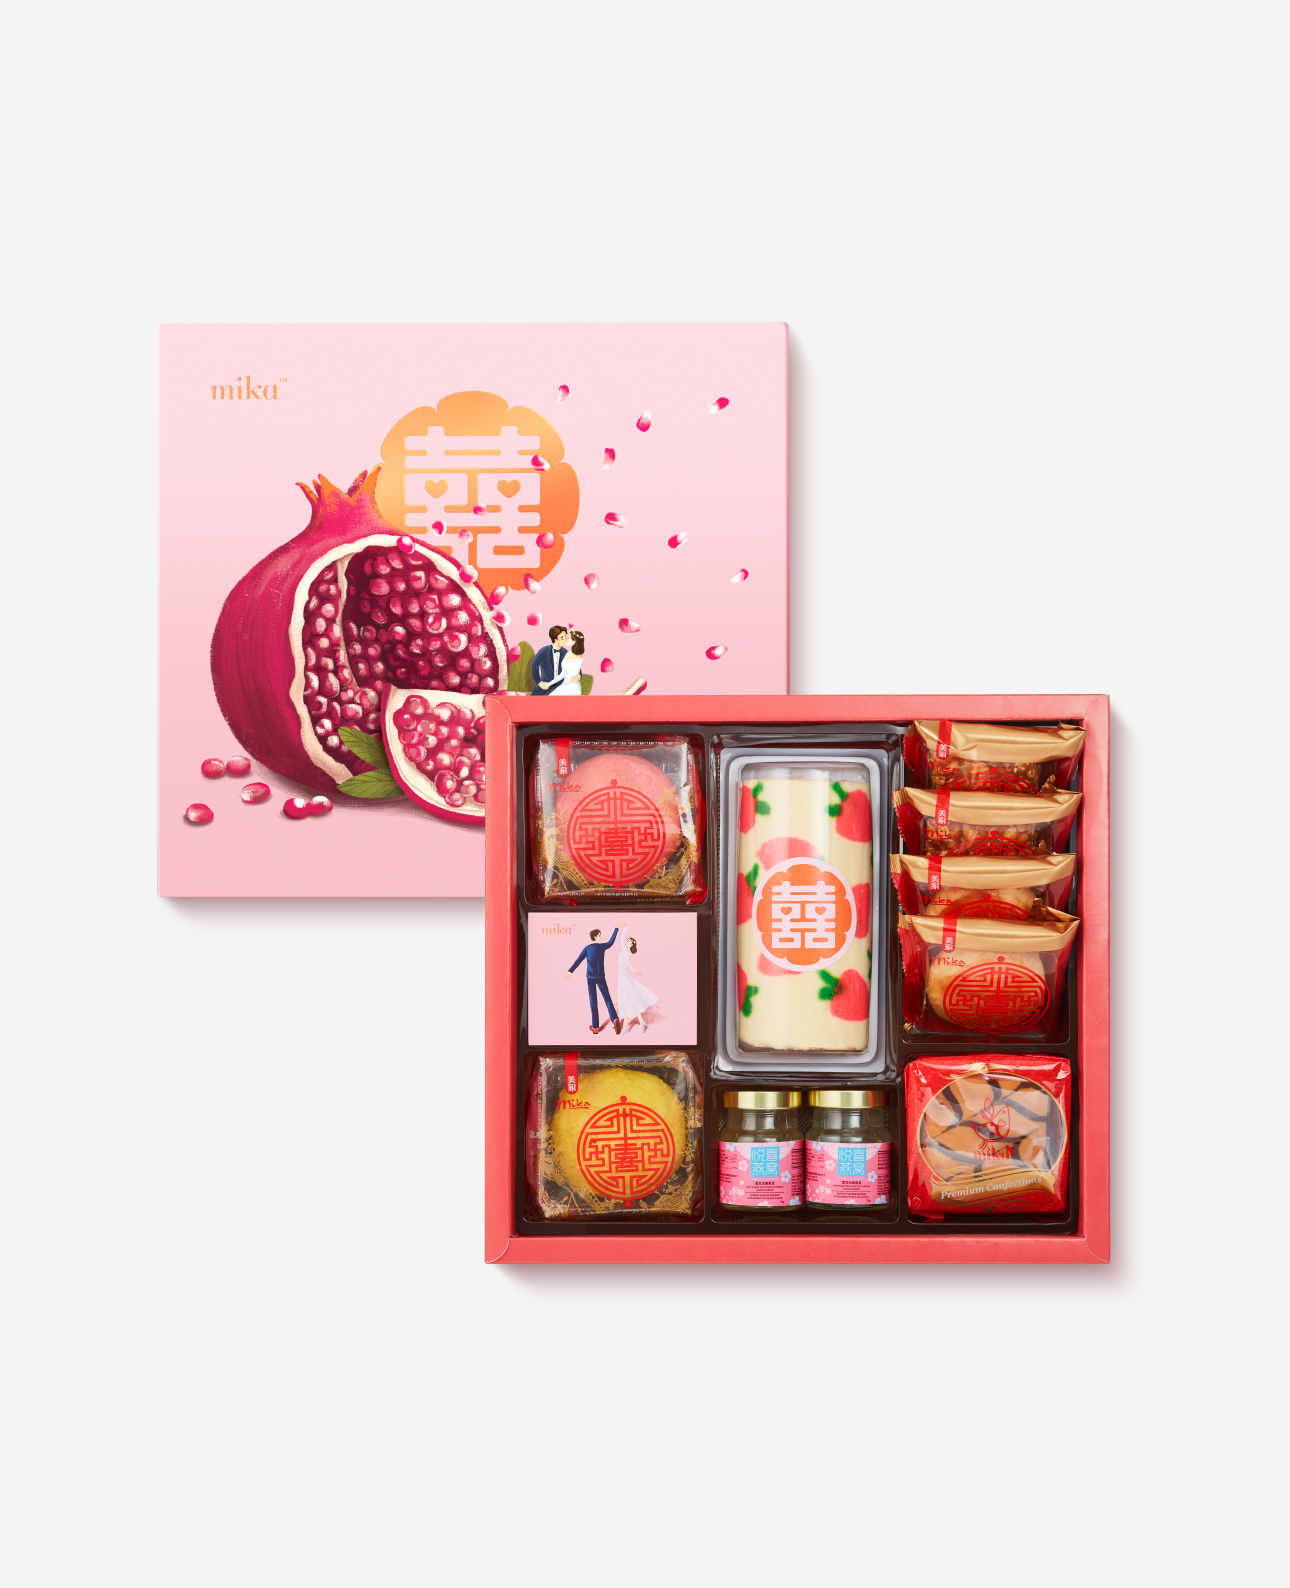 Fruitful Fertility 榴开百子 Set B Mika Premium Gift Shop